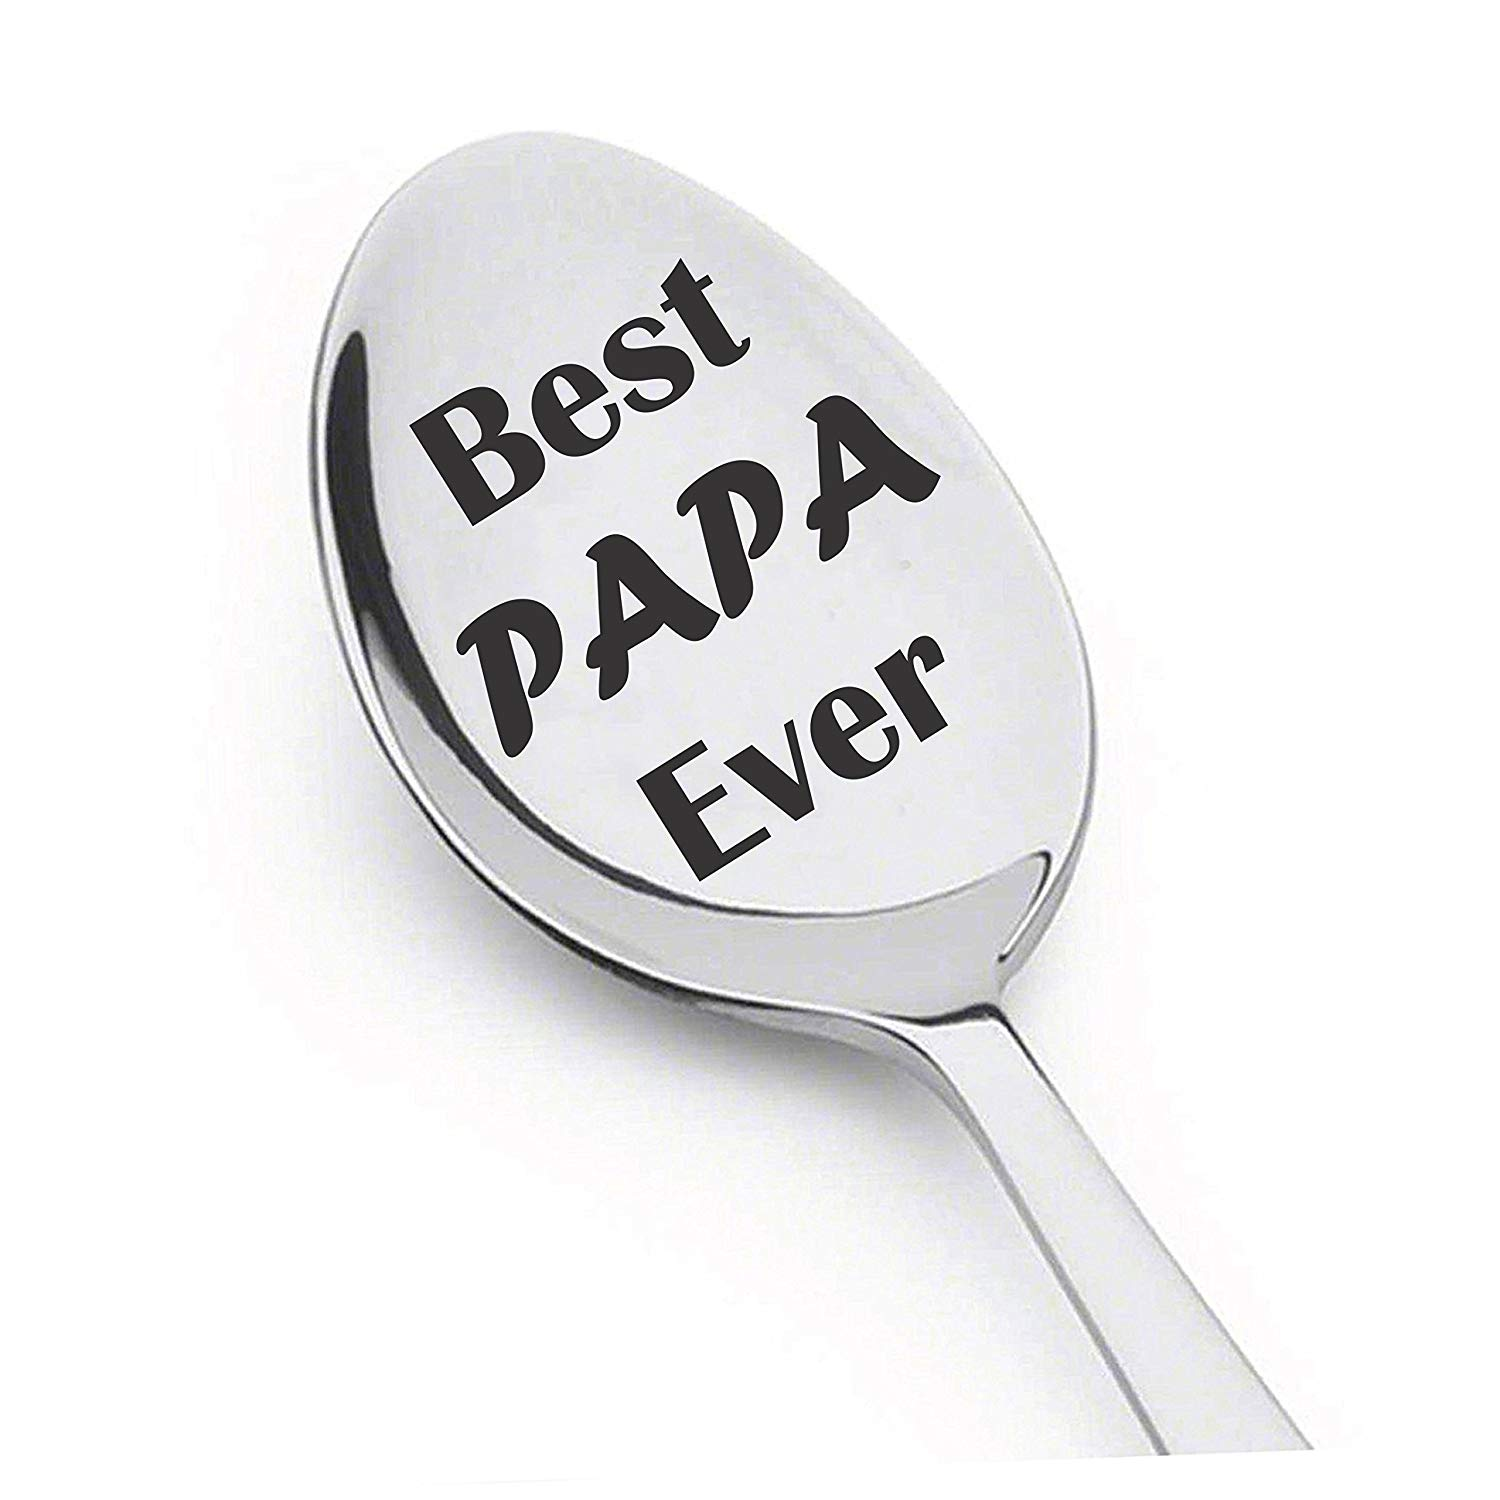 Best Papa Ever Spoon - Christmas/Birthday/Father's Day Gift For Men, Husband, Grandpa & Dad! 8 Inch perfectly designed Stainless Steel Spoon. Gifts under 10